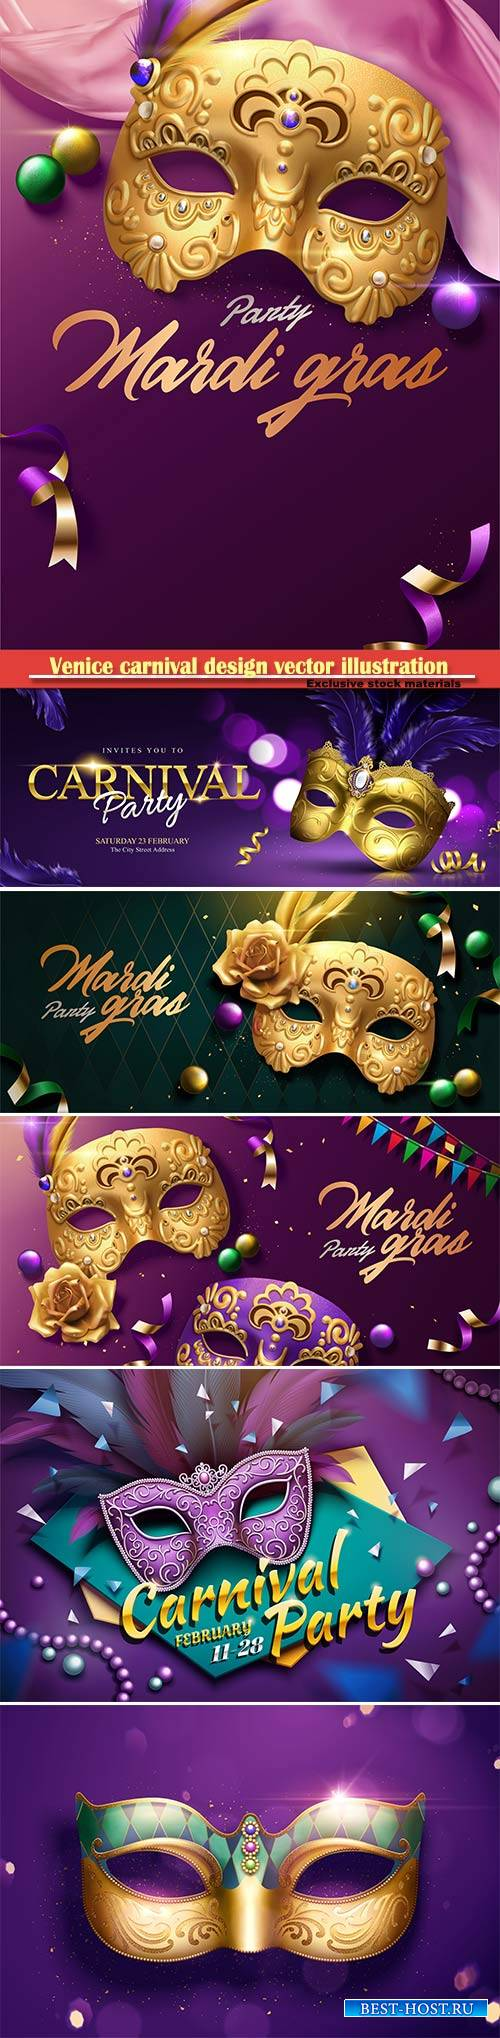 Venice carnival design vector illustration, Mardi gras # 8